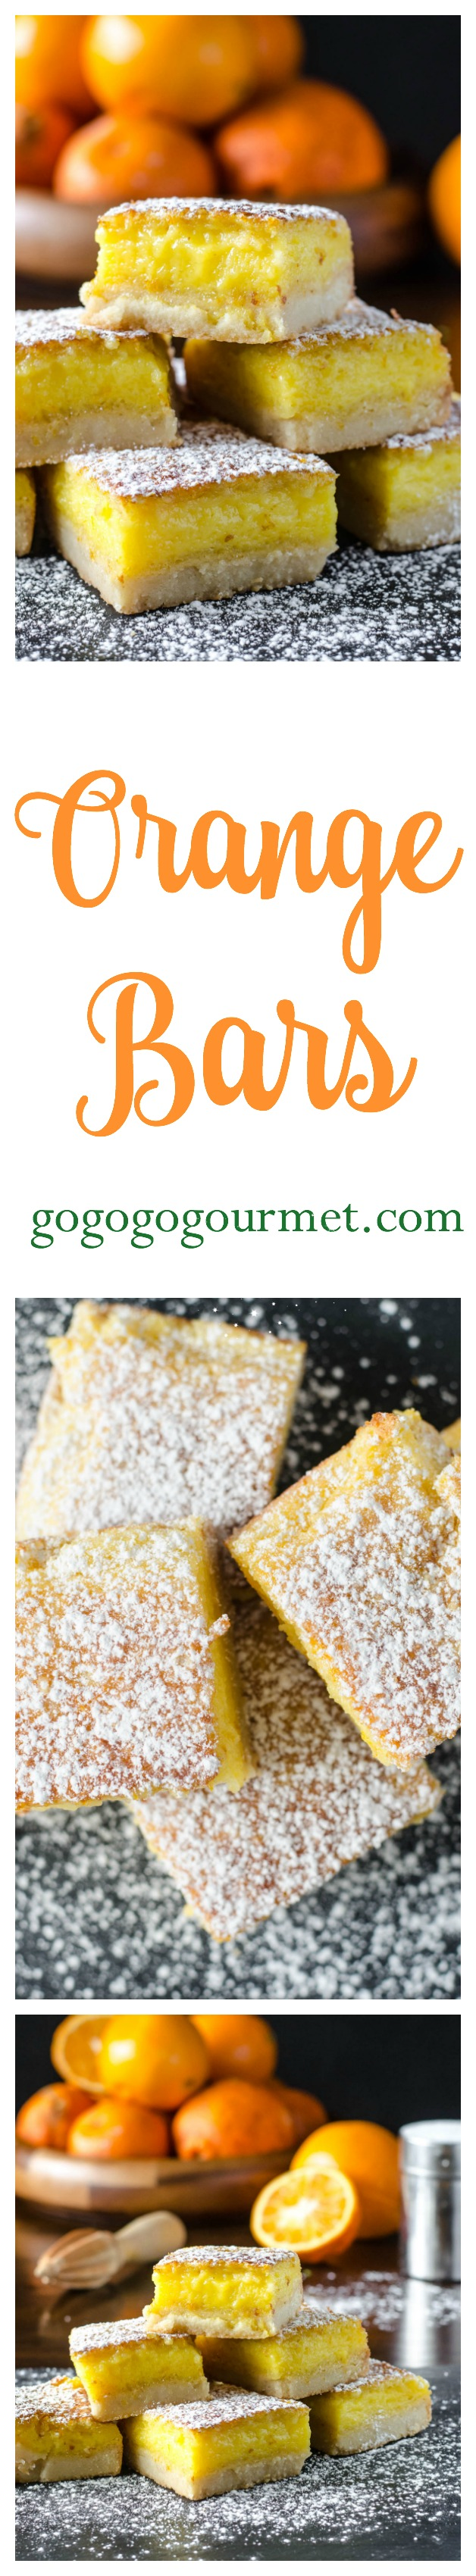 Use some delicious in-season citrus to make these Orange bars- a clever twist on lemon bars! A delicious crust, topped with a thick layer of sweet and tart orange filling- you'd never guess that they're so simple to make! | Go Go Go Gourmet @Go Go Go Gourmet via @gogogogourmet